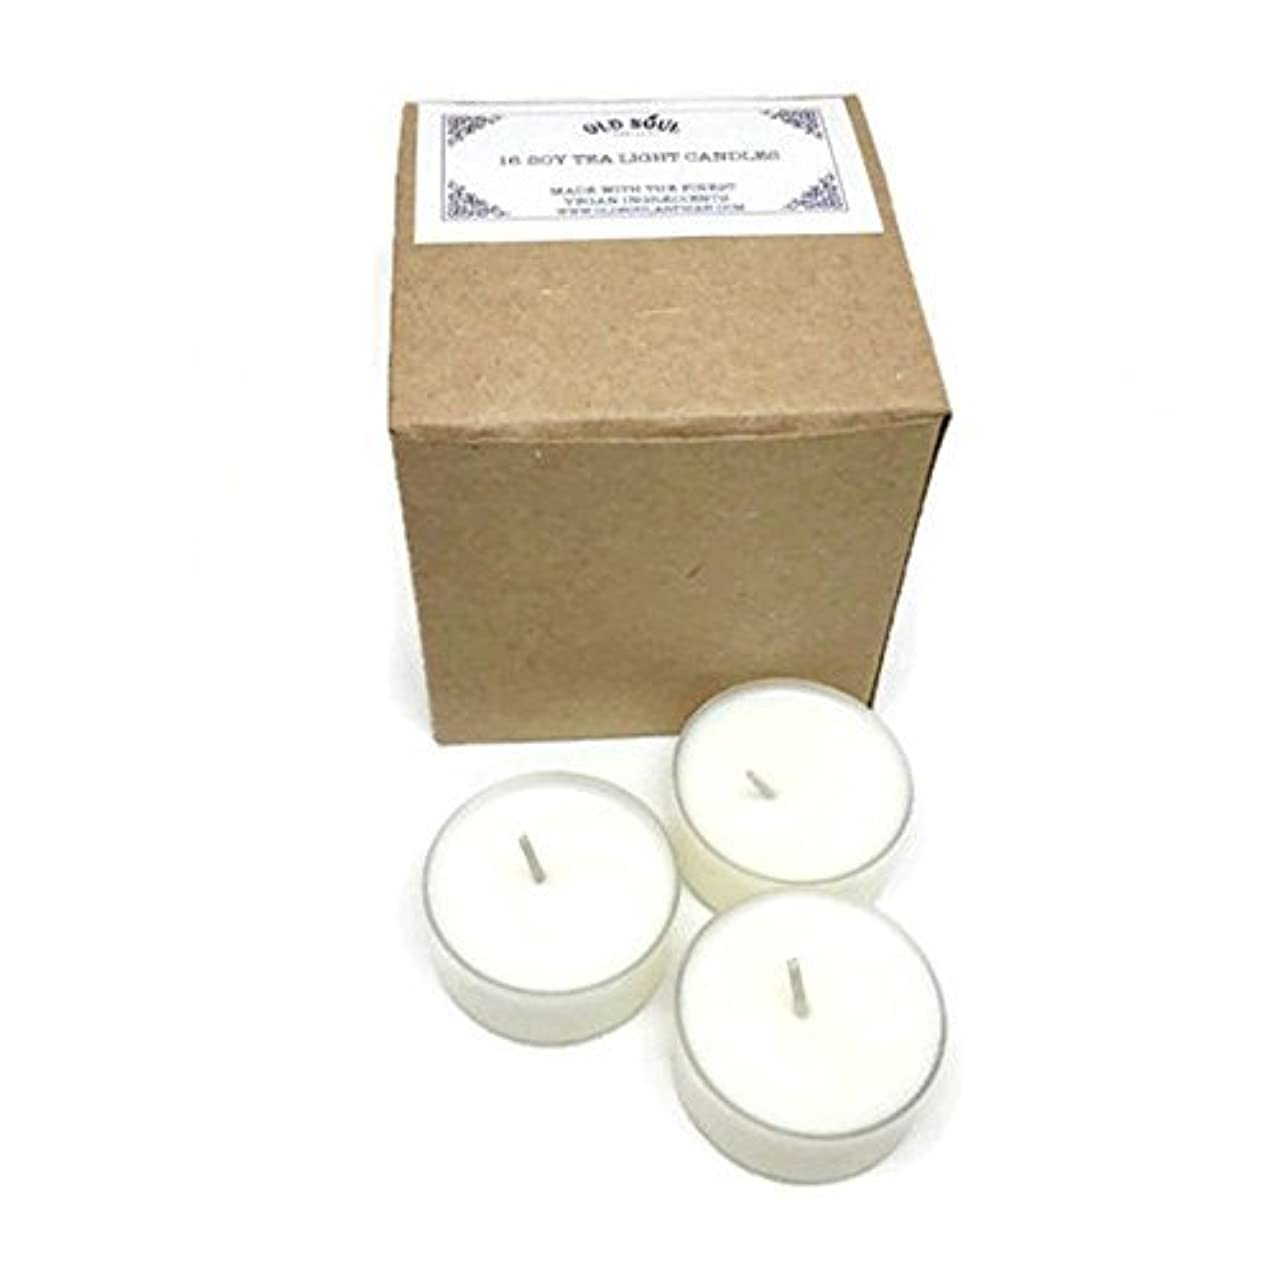 美人難しい話をするVanilla Scented Vegan Soy Tea Light Candles - 16 Box Set [並行輸入品]